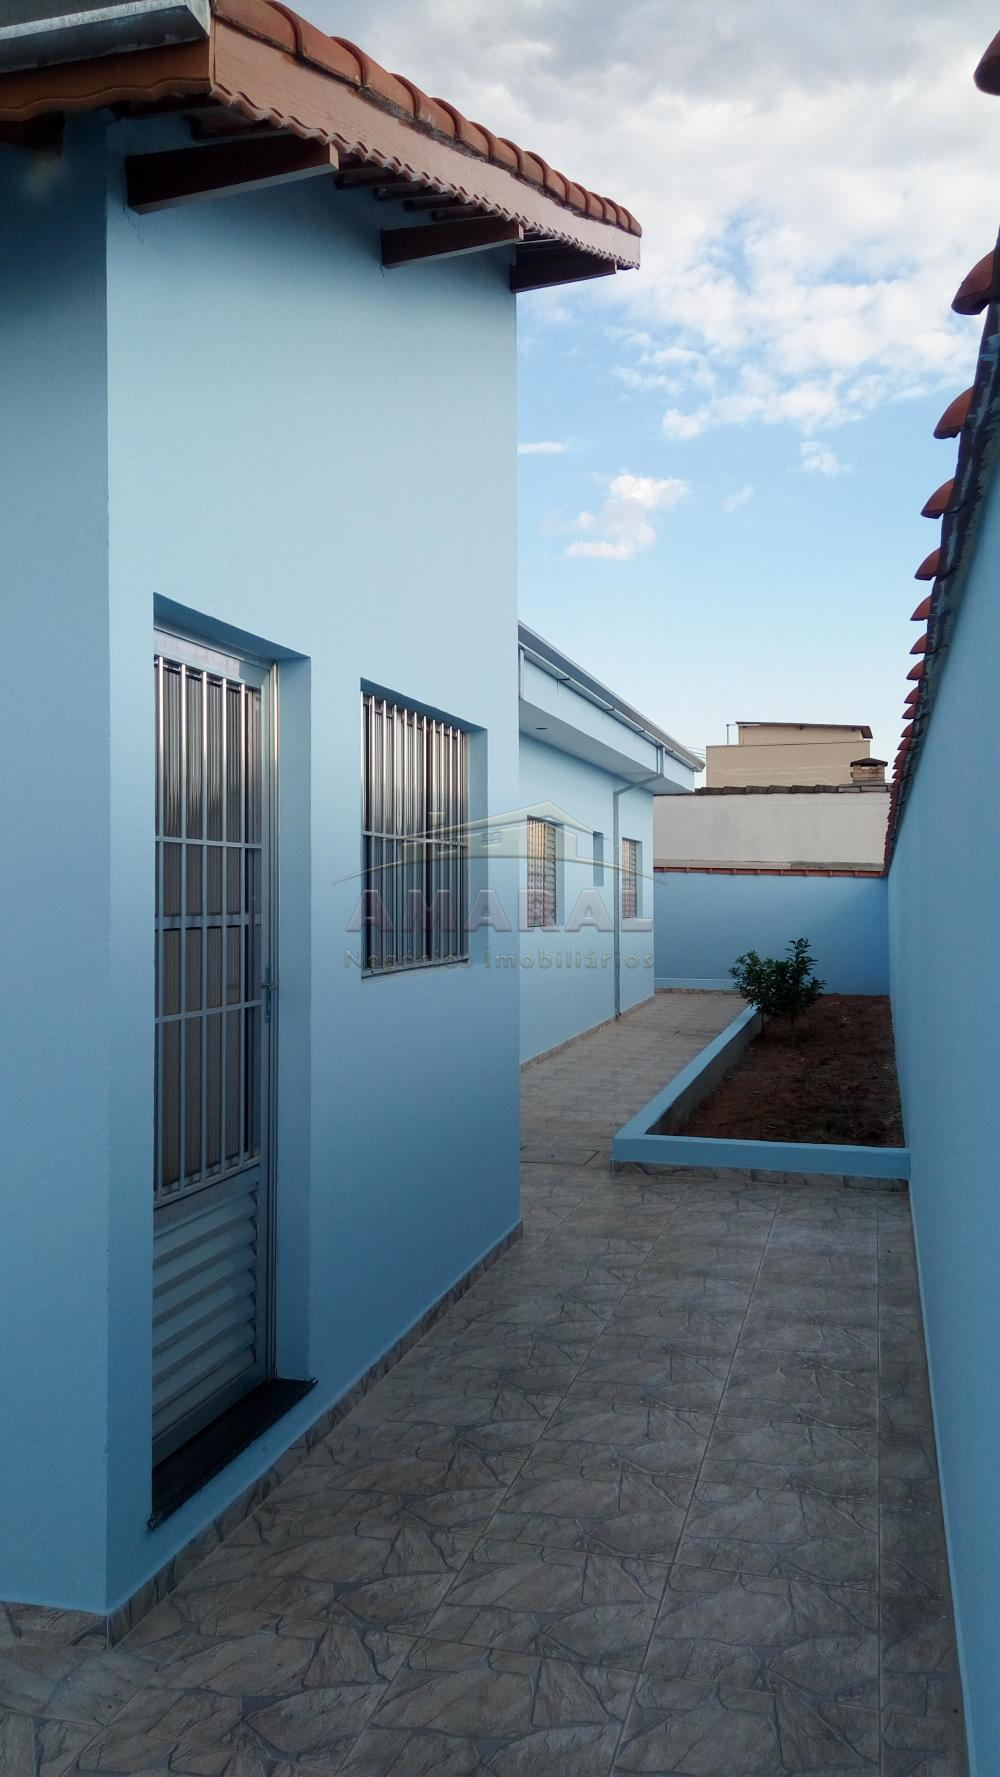 Suzano Casa Venda R$230.000,00 1 Dormitorio 1 Suite Area do terreno 150.00m2 Area construida 70.00m2